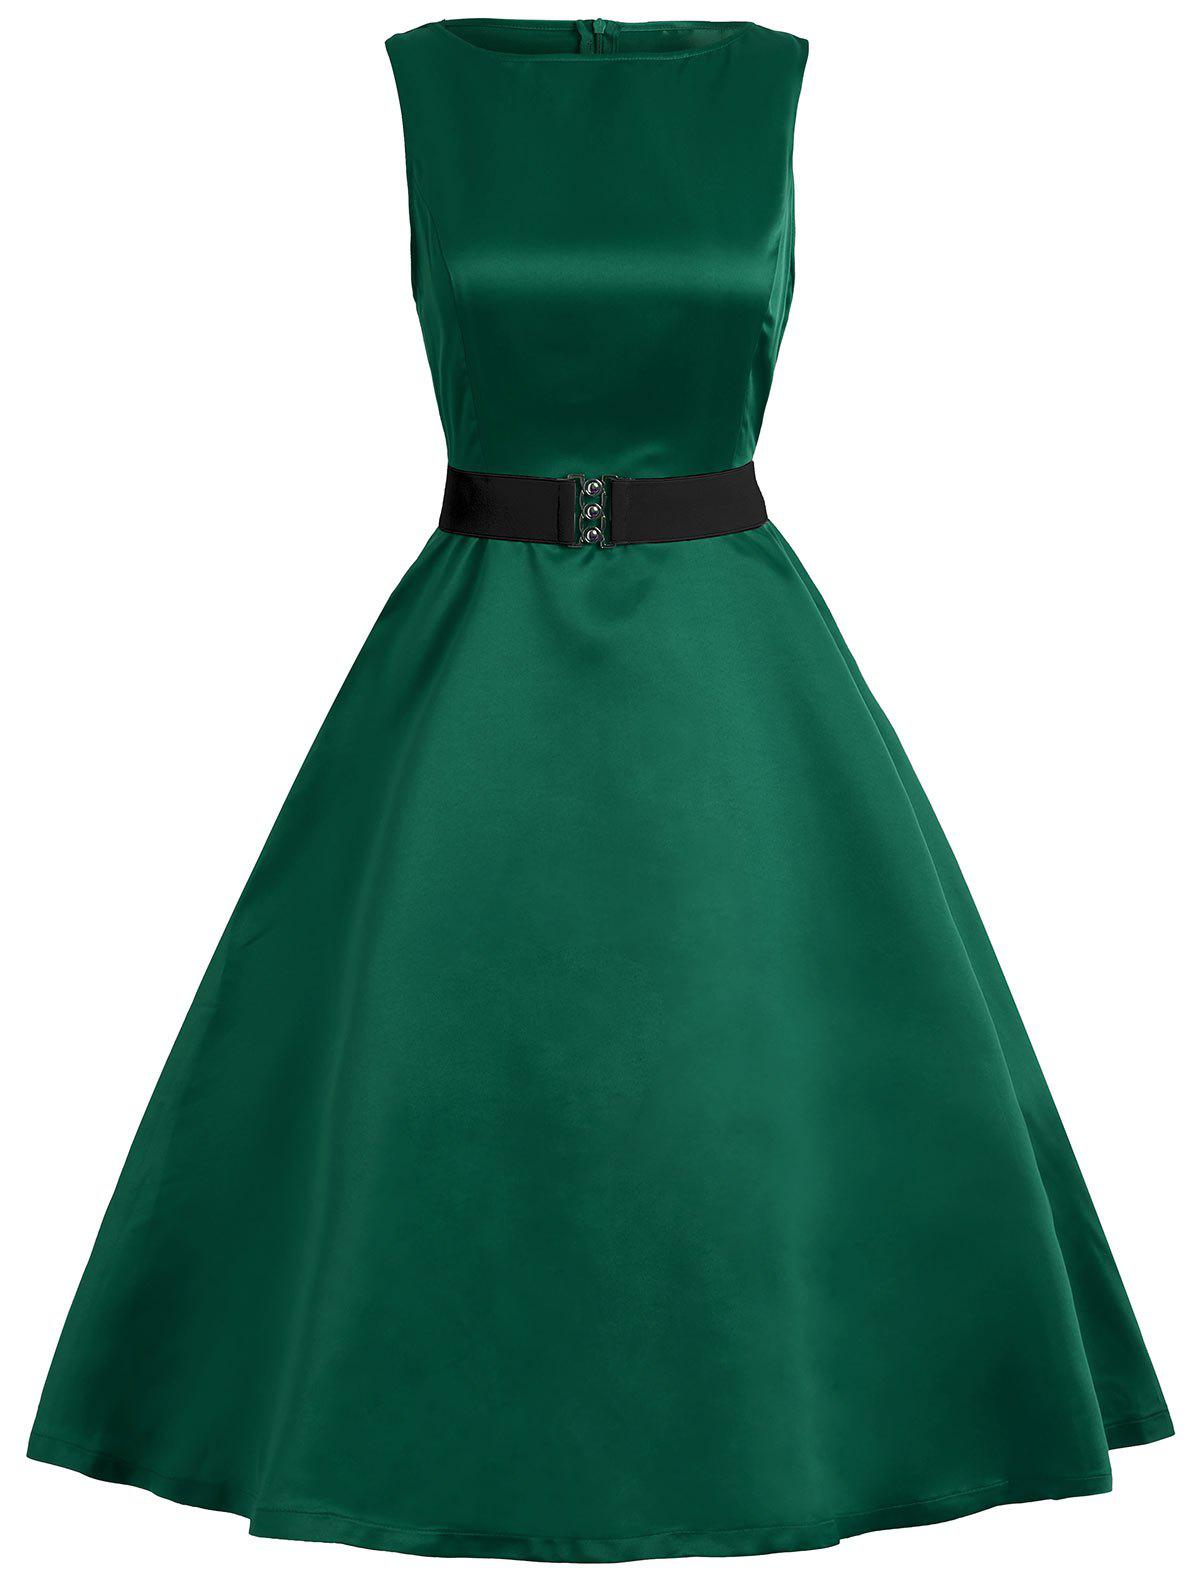 Vintage Belted Sleeveless High Waist DressWOMEN<br><br>Size: 2XL; Color: GREEN; Style: Vintage; Material: Cotton,Polyester; Silhouette: A-Line; Dresses Length: Knee-Length; Neckline: Boat Neck; Sleeve Length: Sleeveless; Pattern Type: Solid; With Belt: Yes; Season: Fall,Summer; Weight: 0.3000kg; Package Contents: 1 x Dress  1 x Belt;